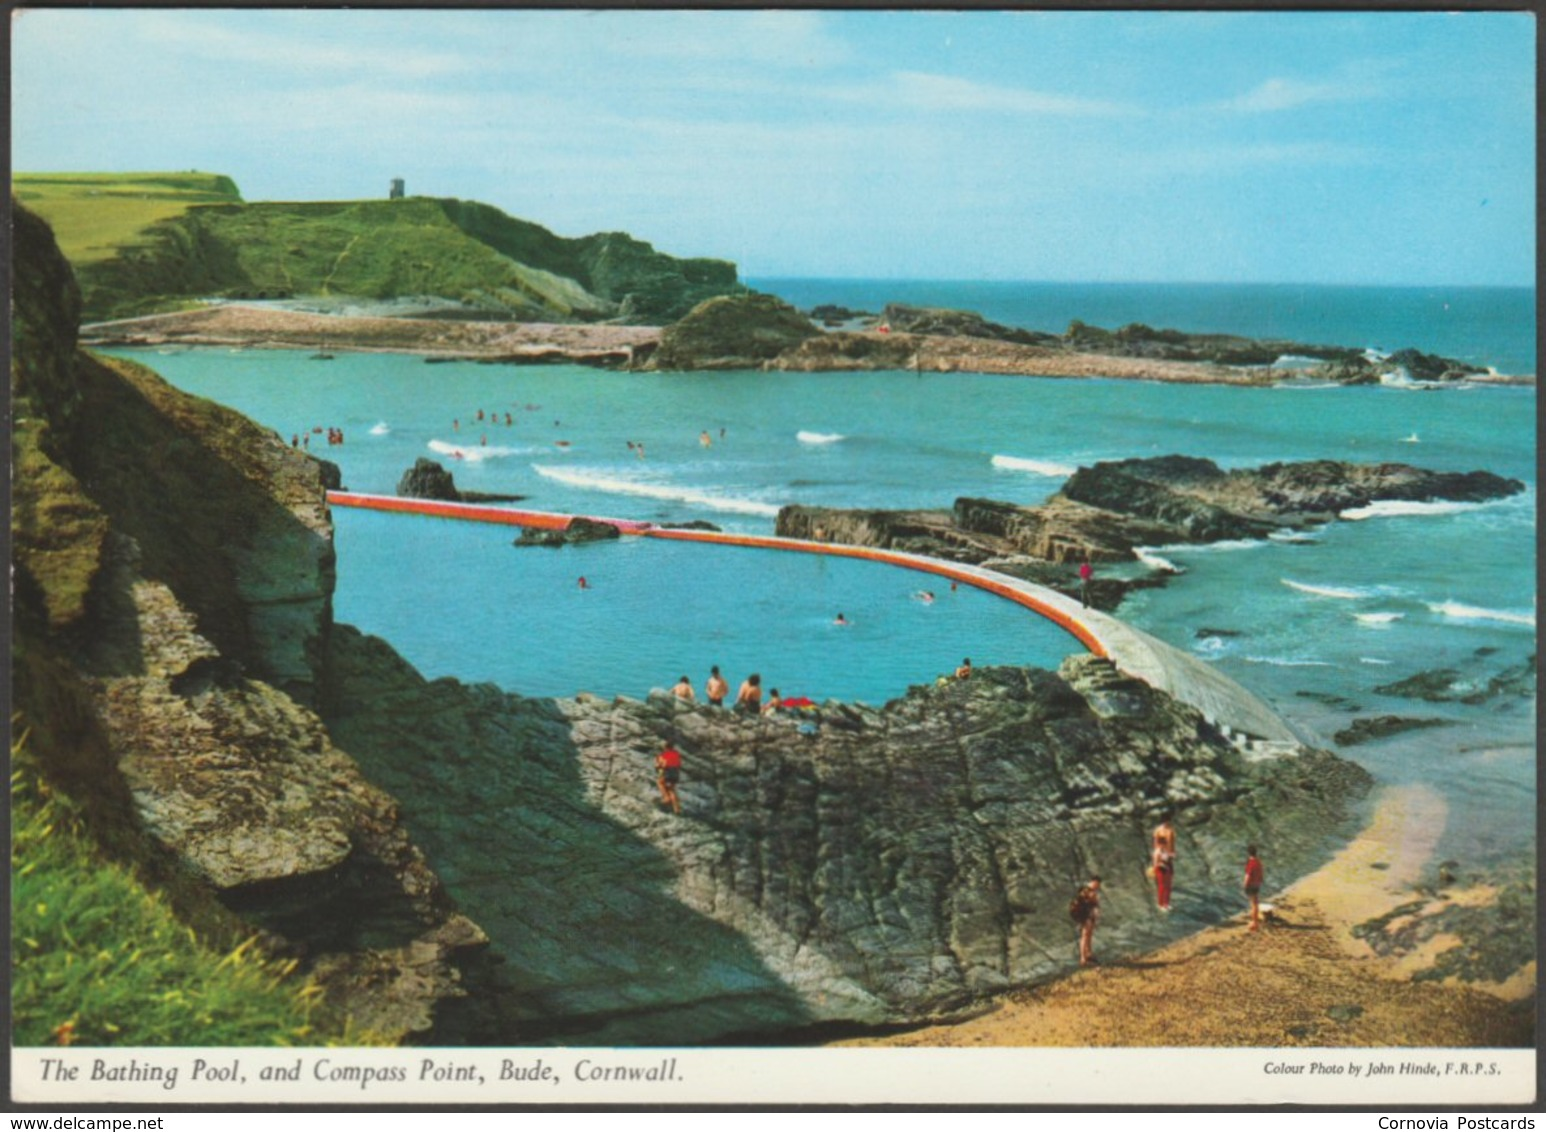 The Bathing Pool And Compass Point, Bude, Cornwall, C.1970s - John Hinde Postcard - Other